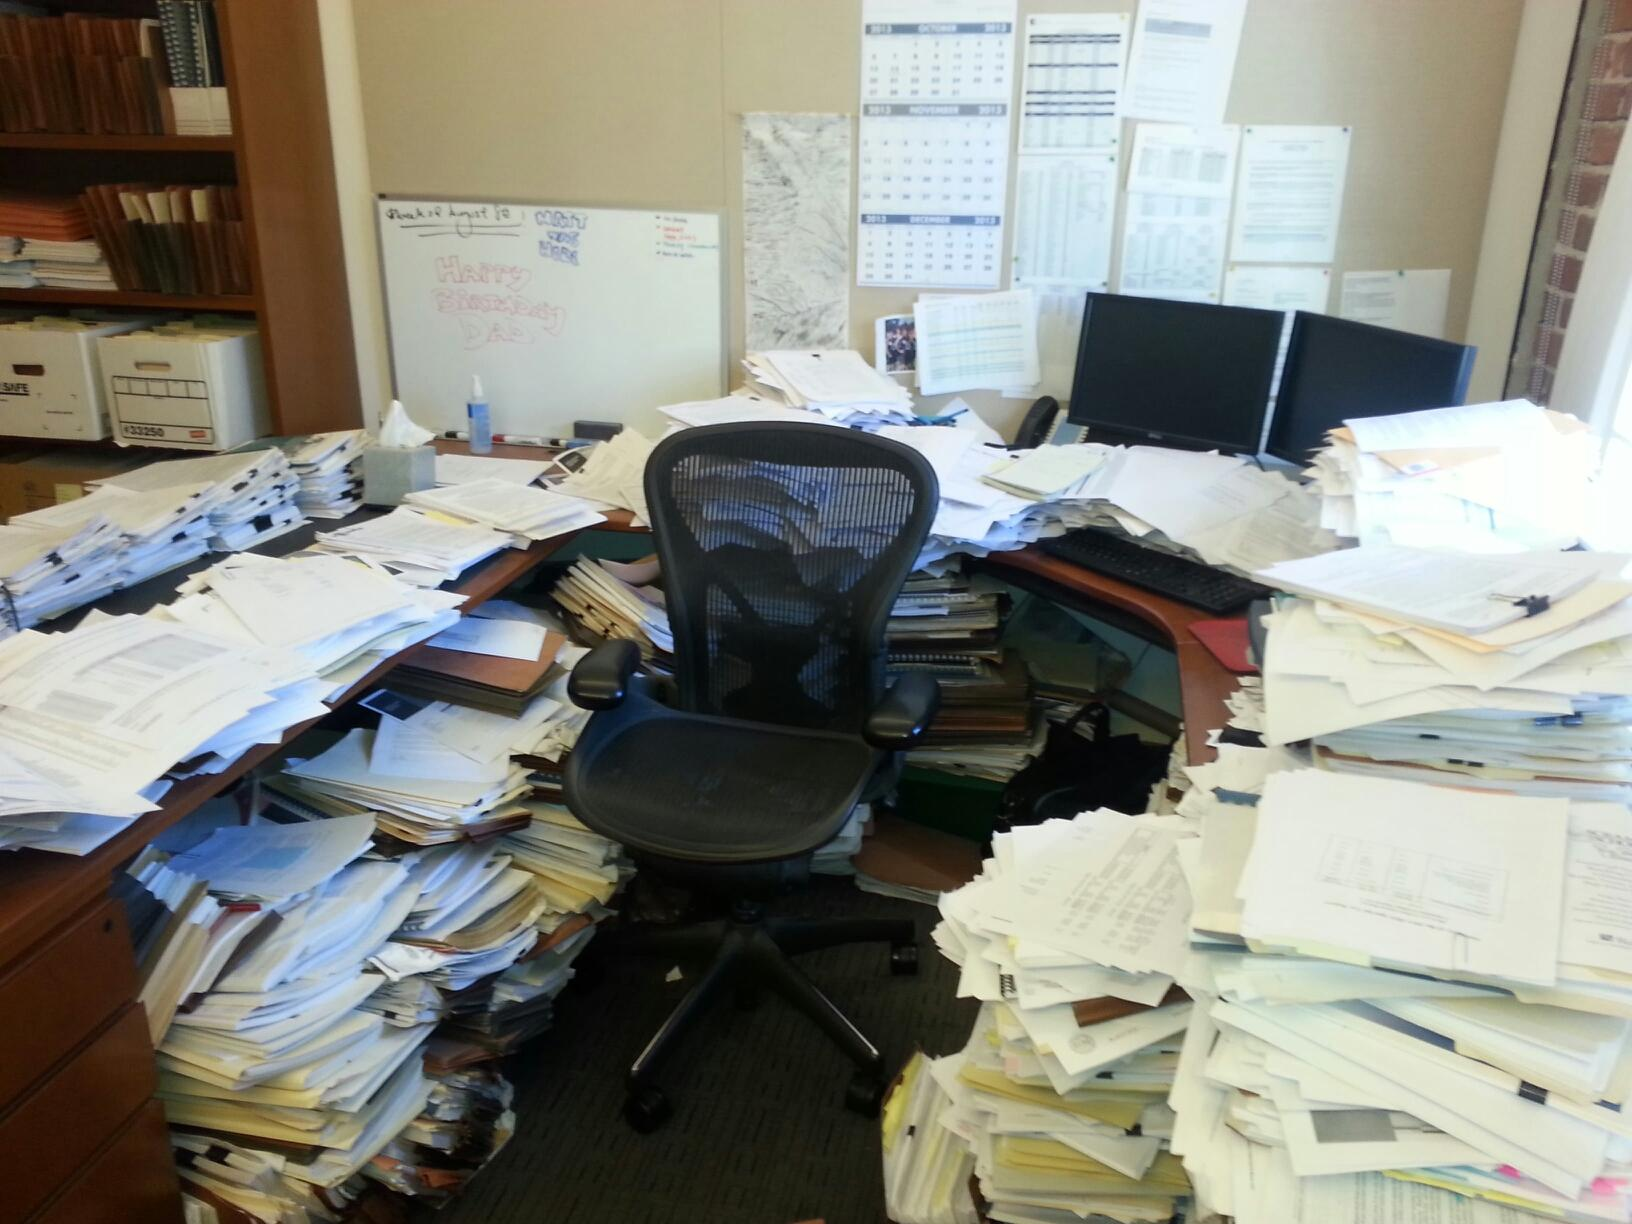 Pin Messy Office Competition Dirt Cake on Pinterest